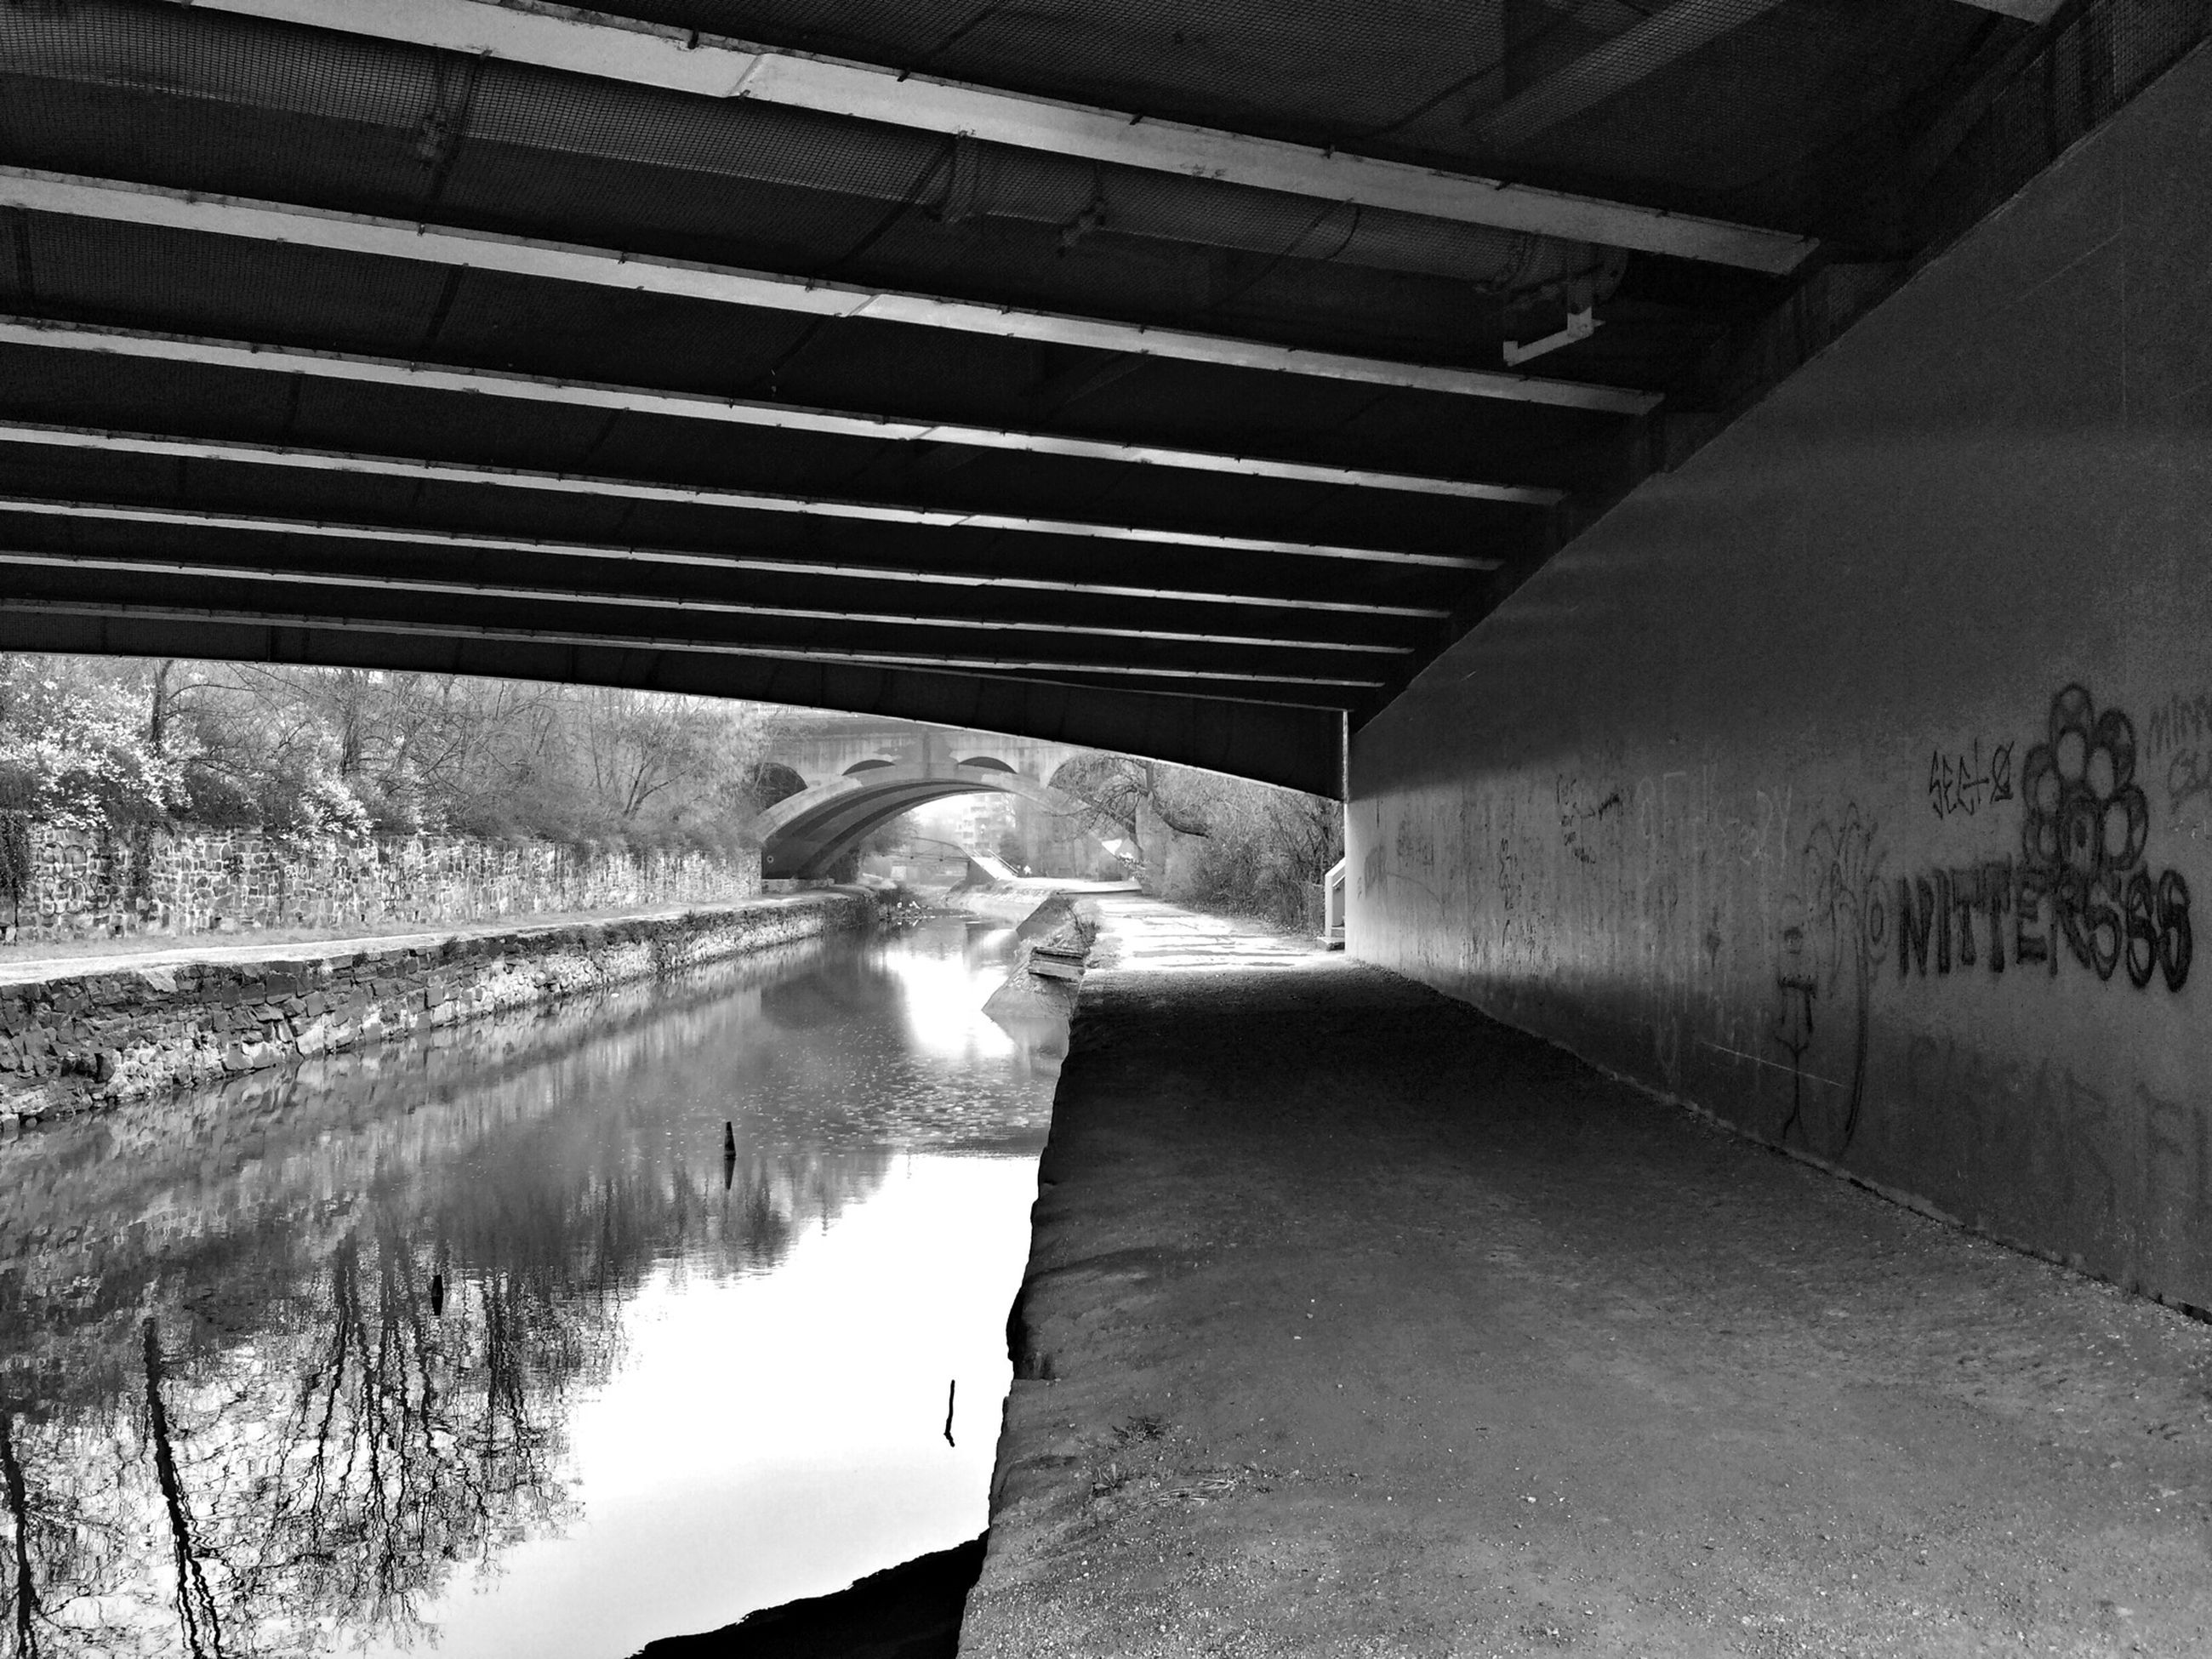 architecture, the way forward, built structure, water, reflection, bridge - man made structure, one person, diminishing perspective, connection, transportation, building exterior, tunnel, puddle, vanishing point, full length, day, railing, canal, road, walking